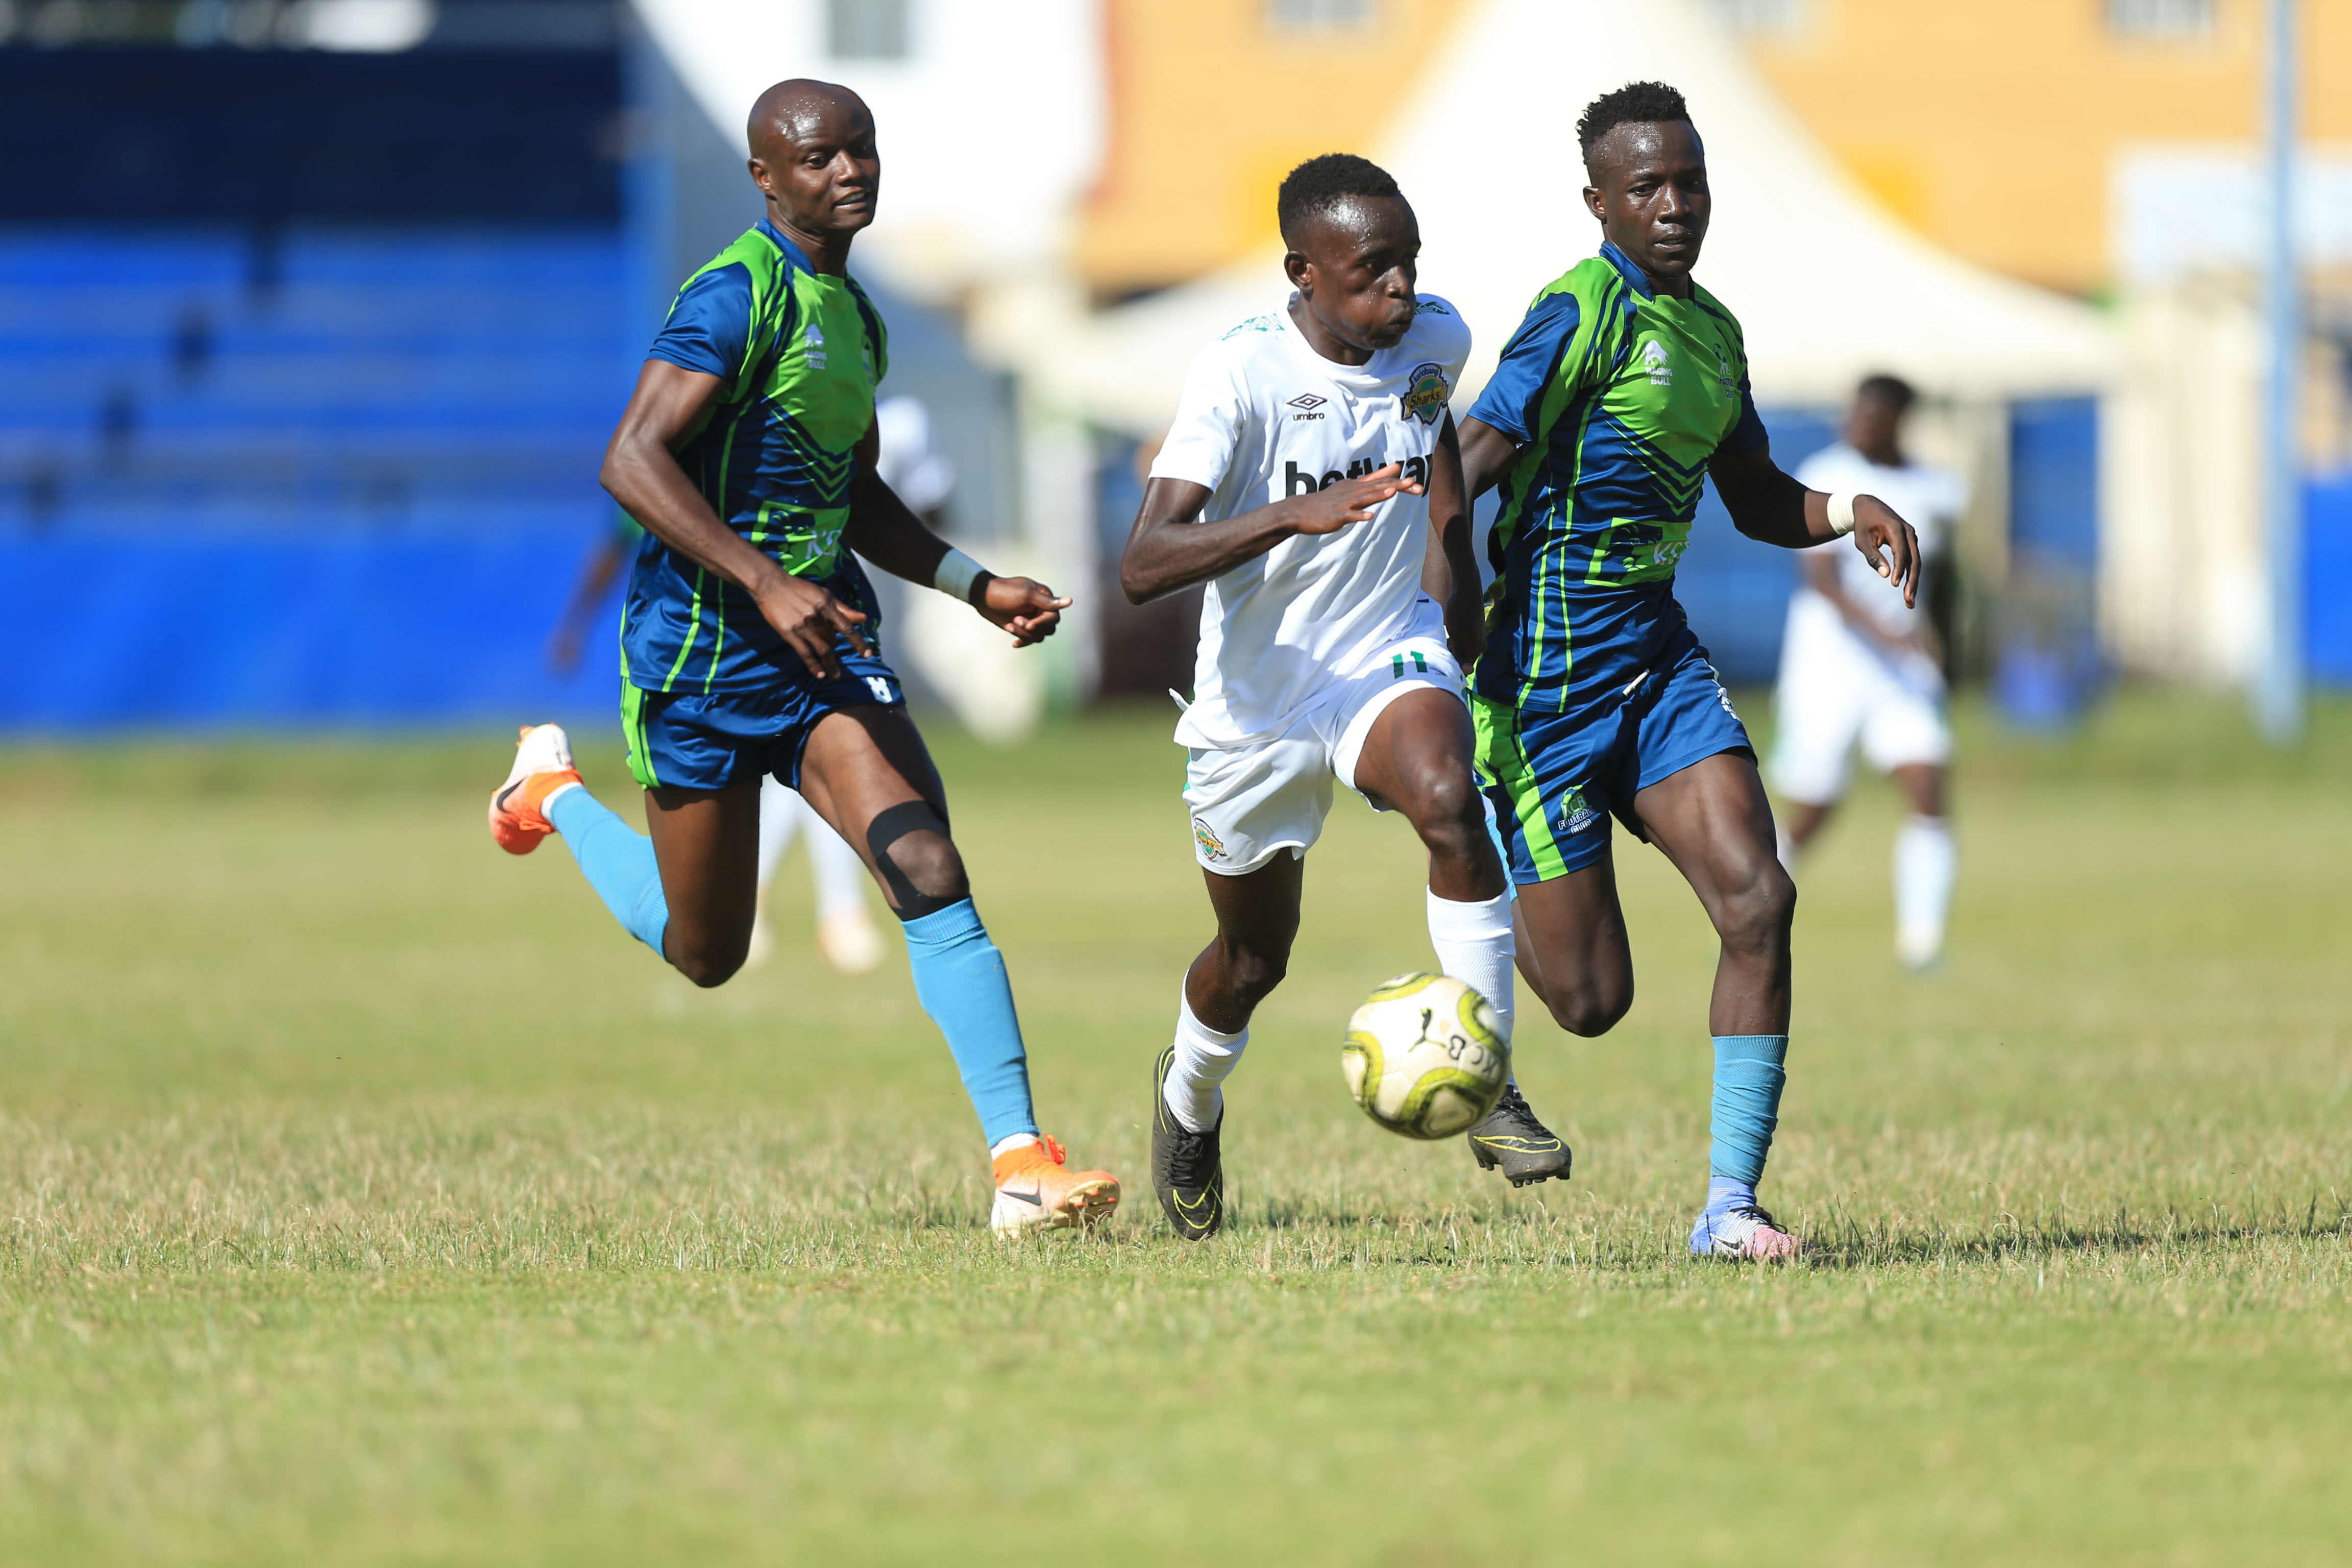 KCB FC pull out of Betway Cup due to coronavirus concerns